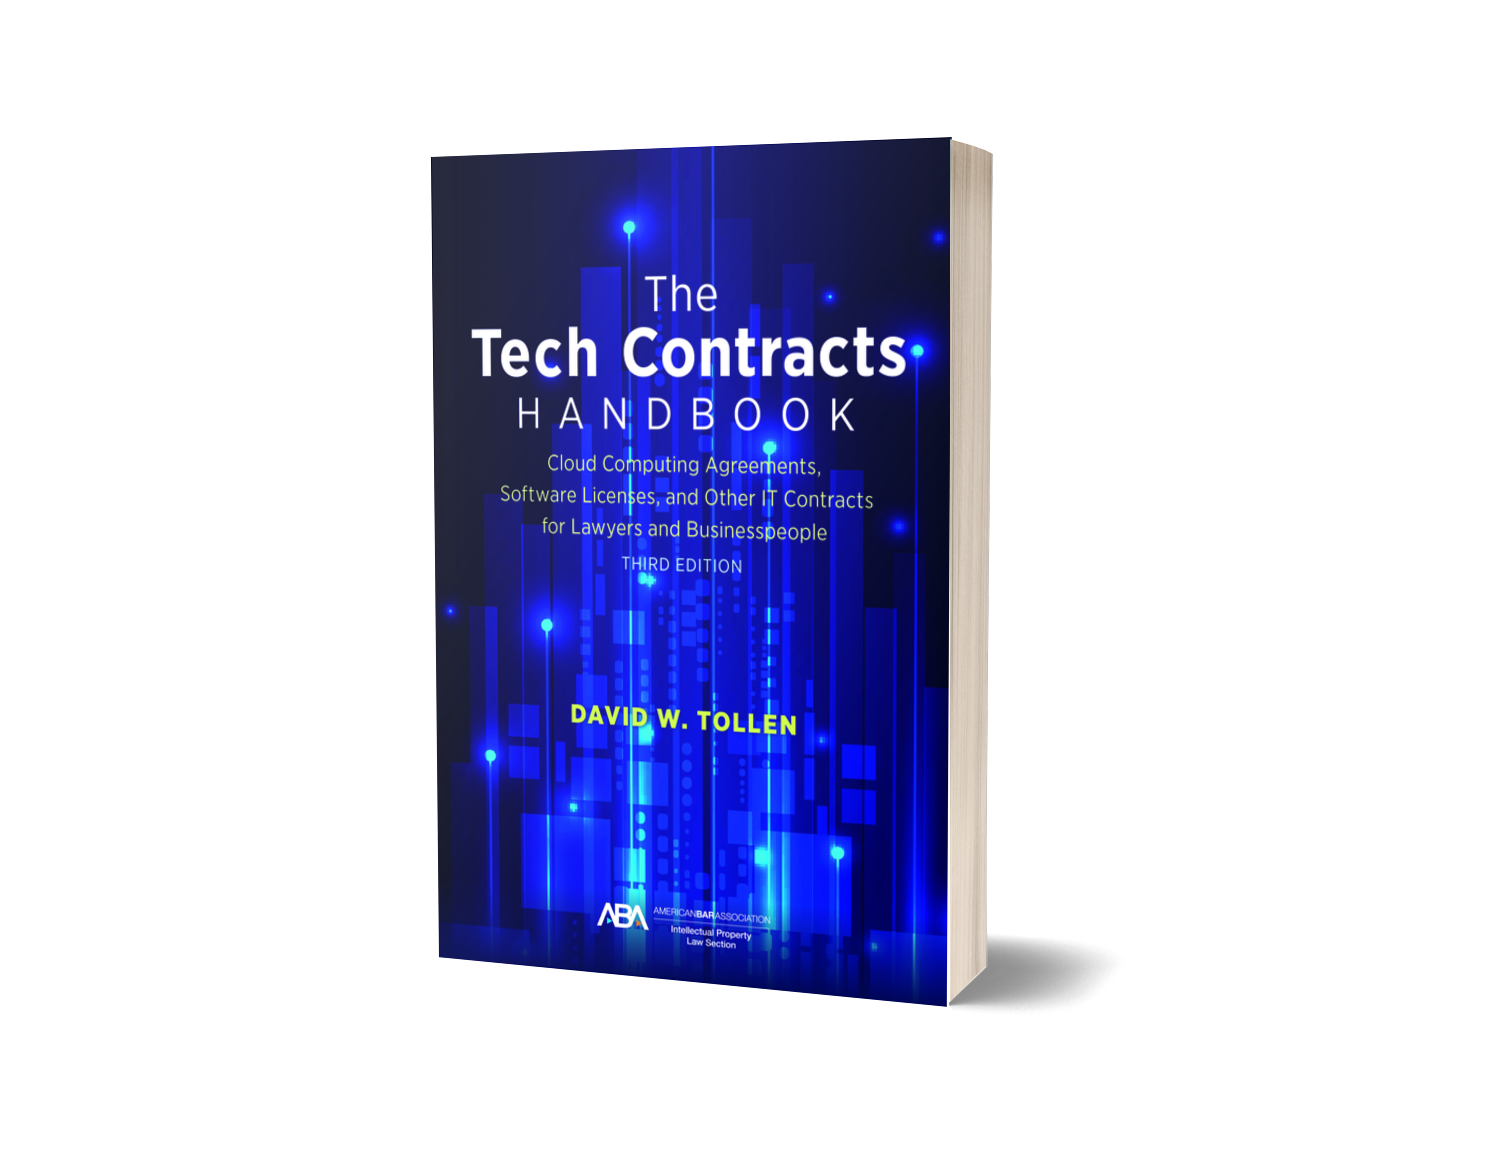 Cover of 3rd edition of The Tech Contracts Handbook.